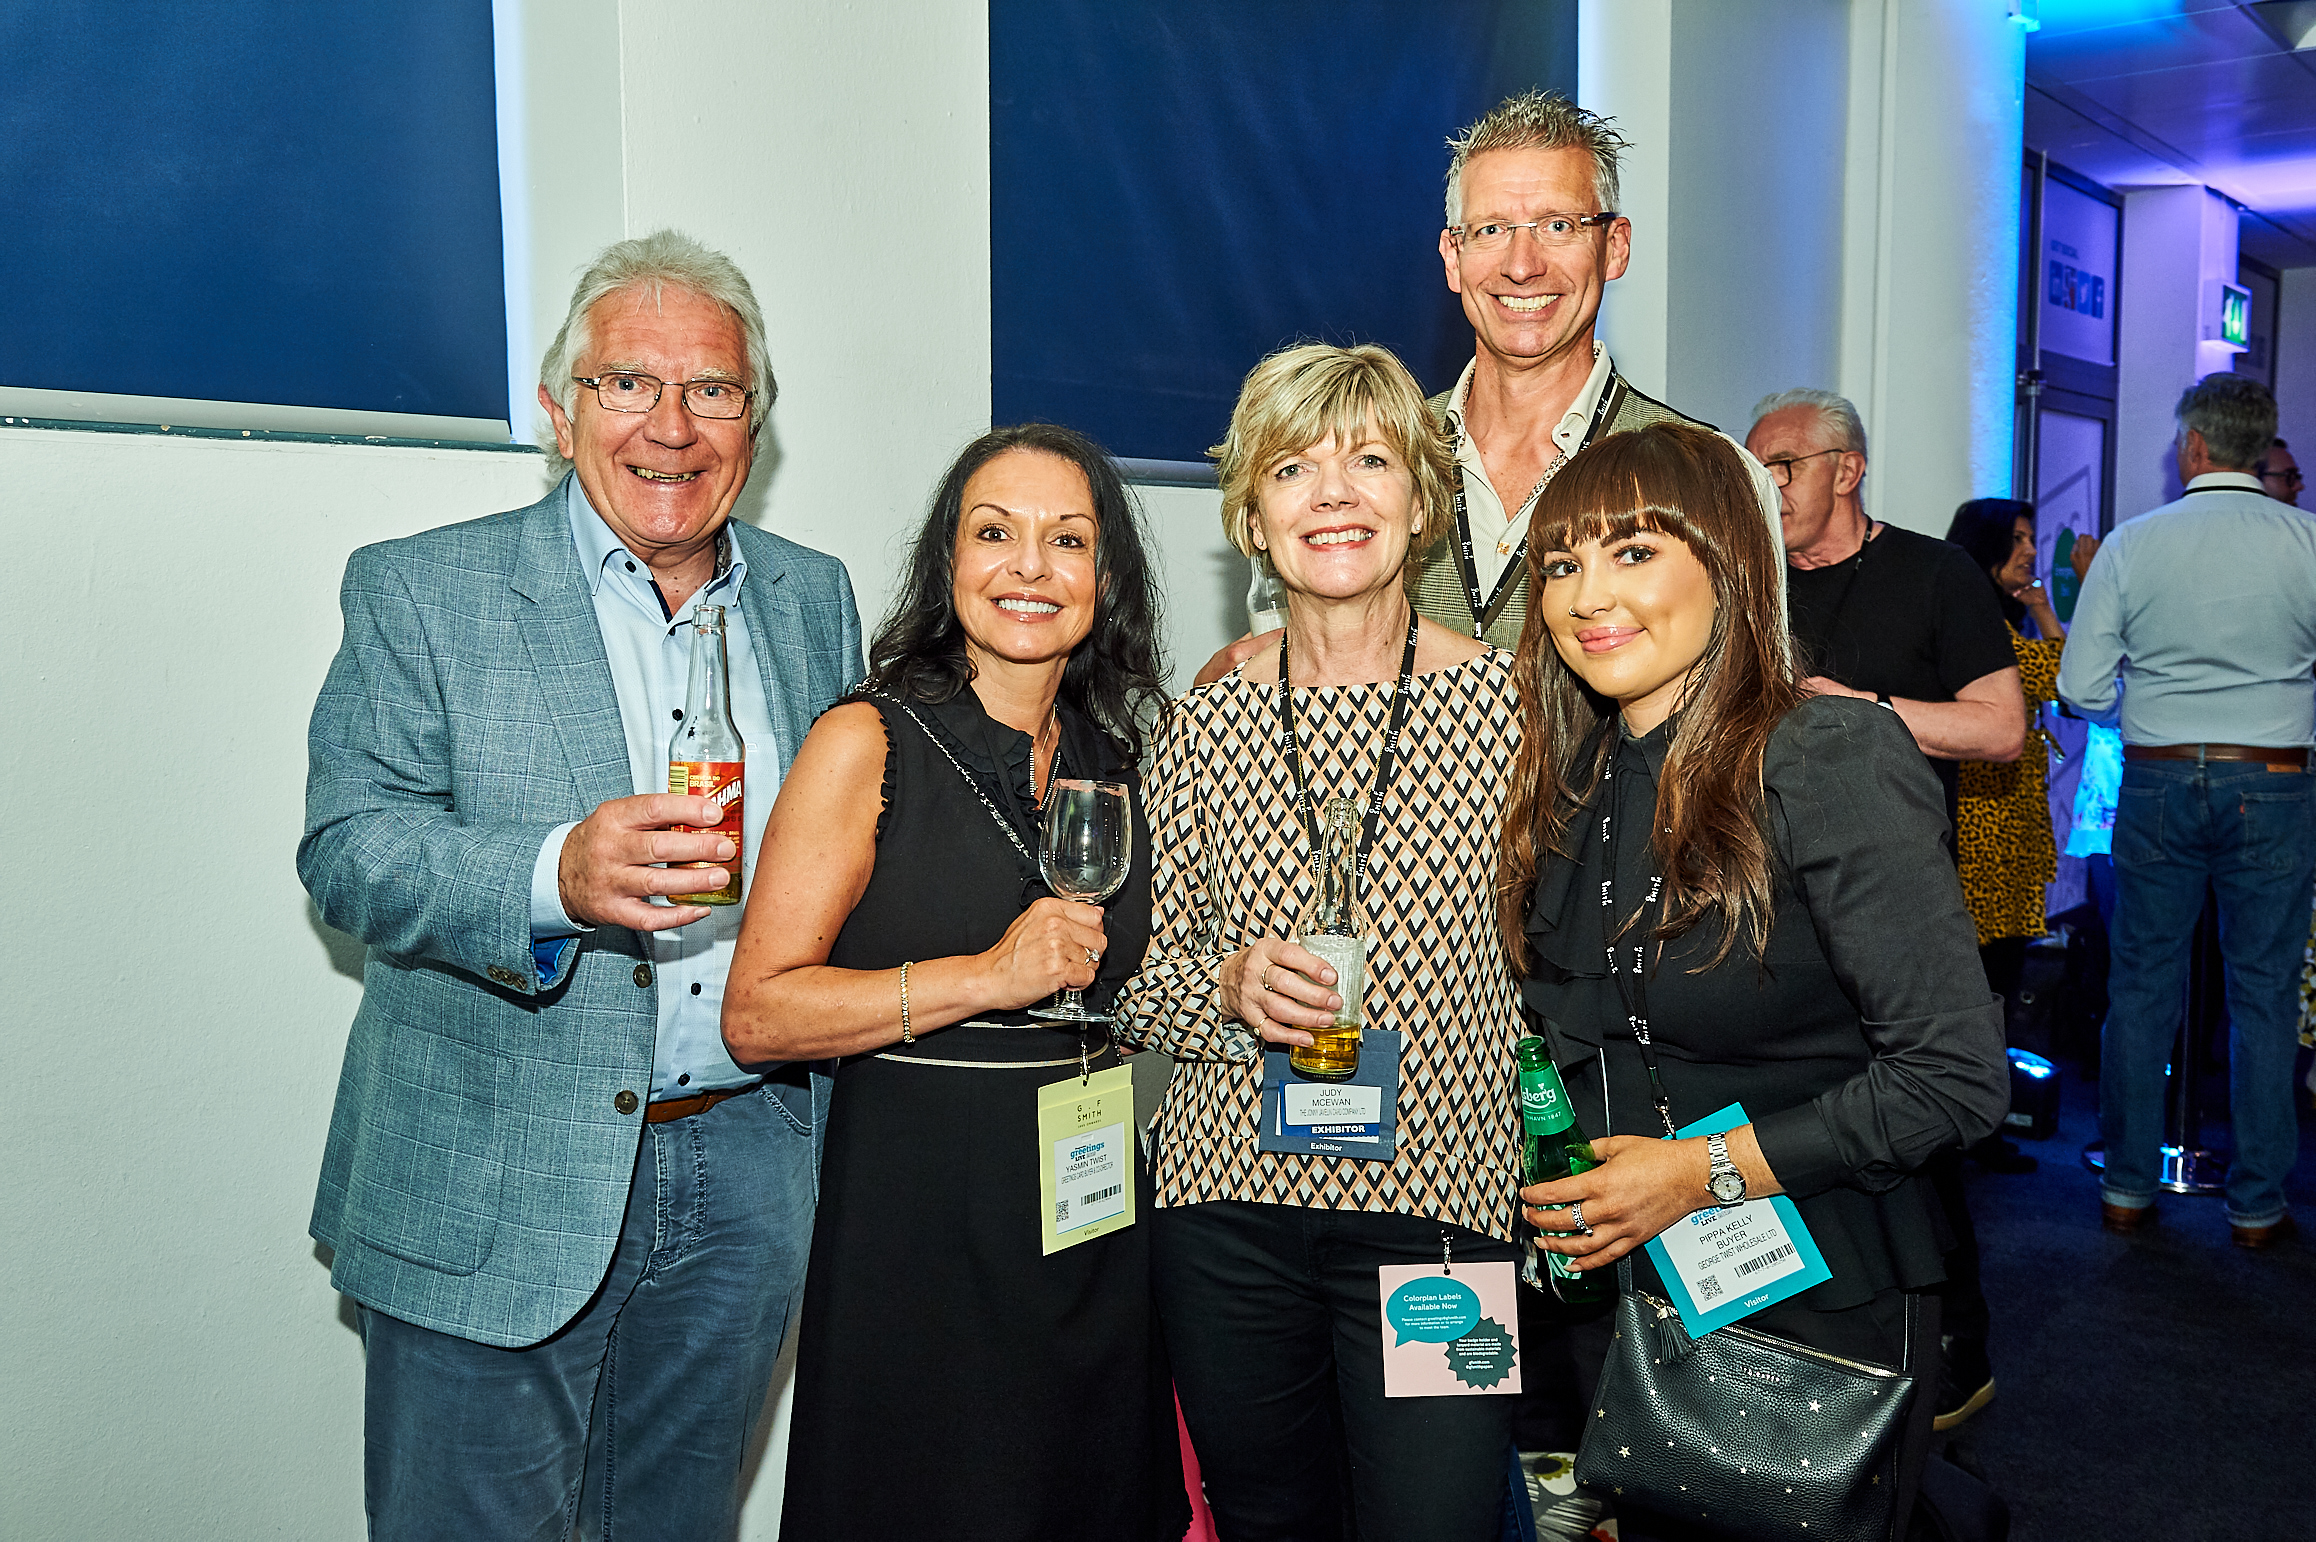 Above: Gee Tee's Yasmin Twist (second left), George Twist and Pippa Kelly (far right) with Jonny Javelin's Jonny Spears and Judy McEwan at the PG Live Opening Night party.